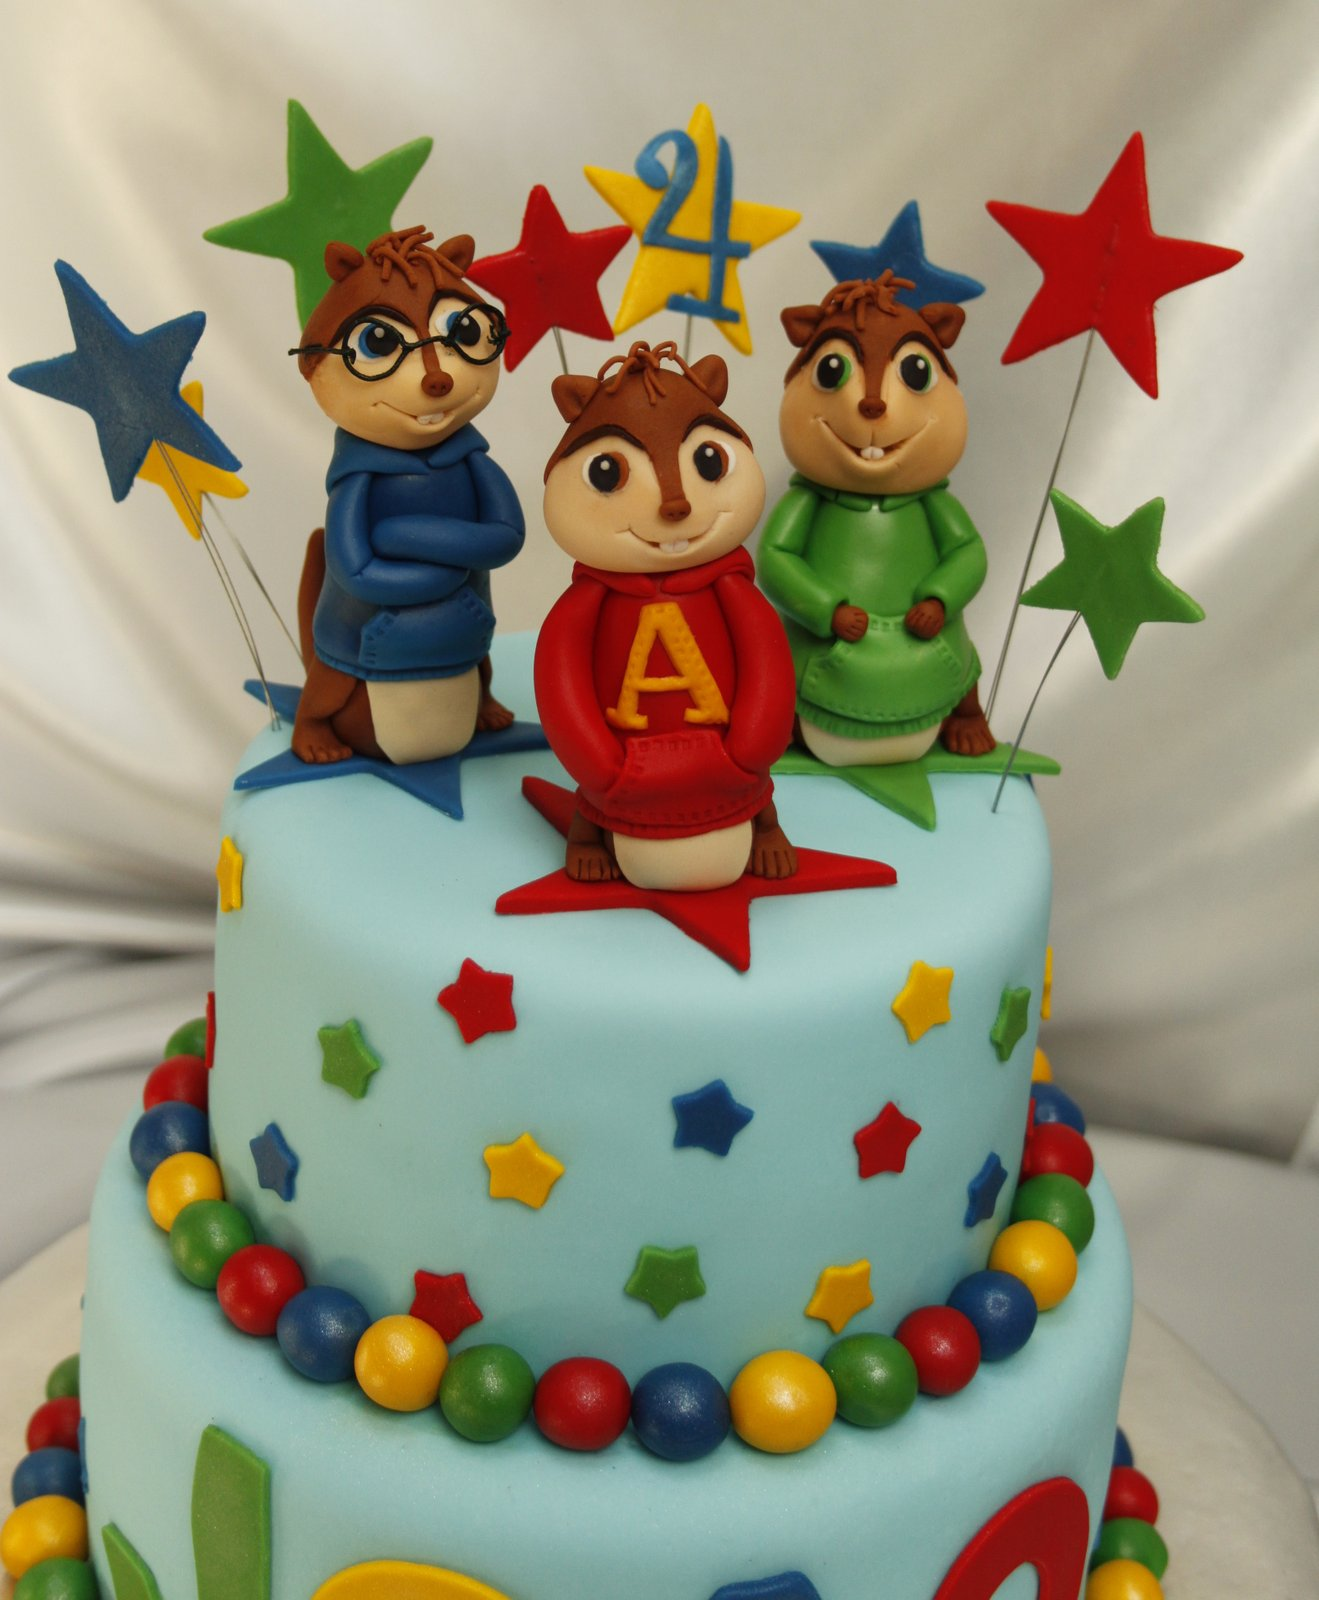 Alvin And The Chipmunks Cake Decorations Uk